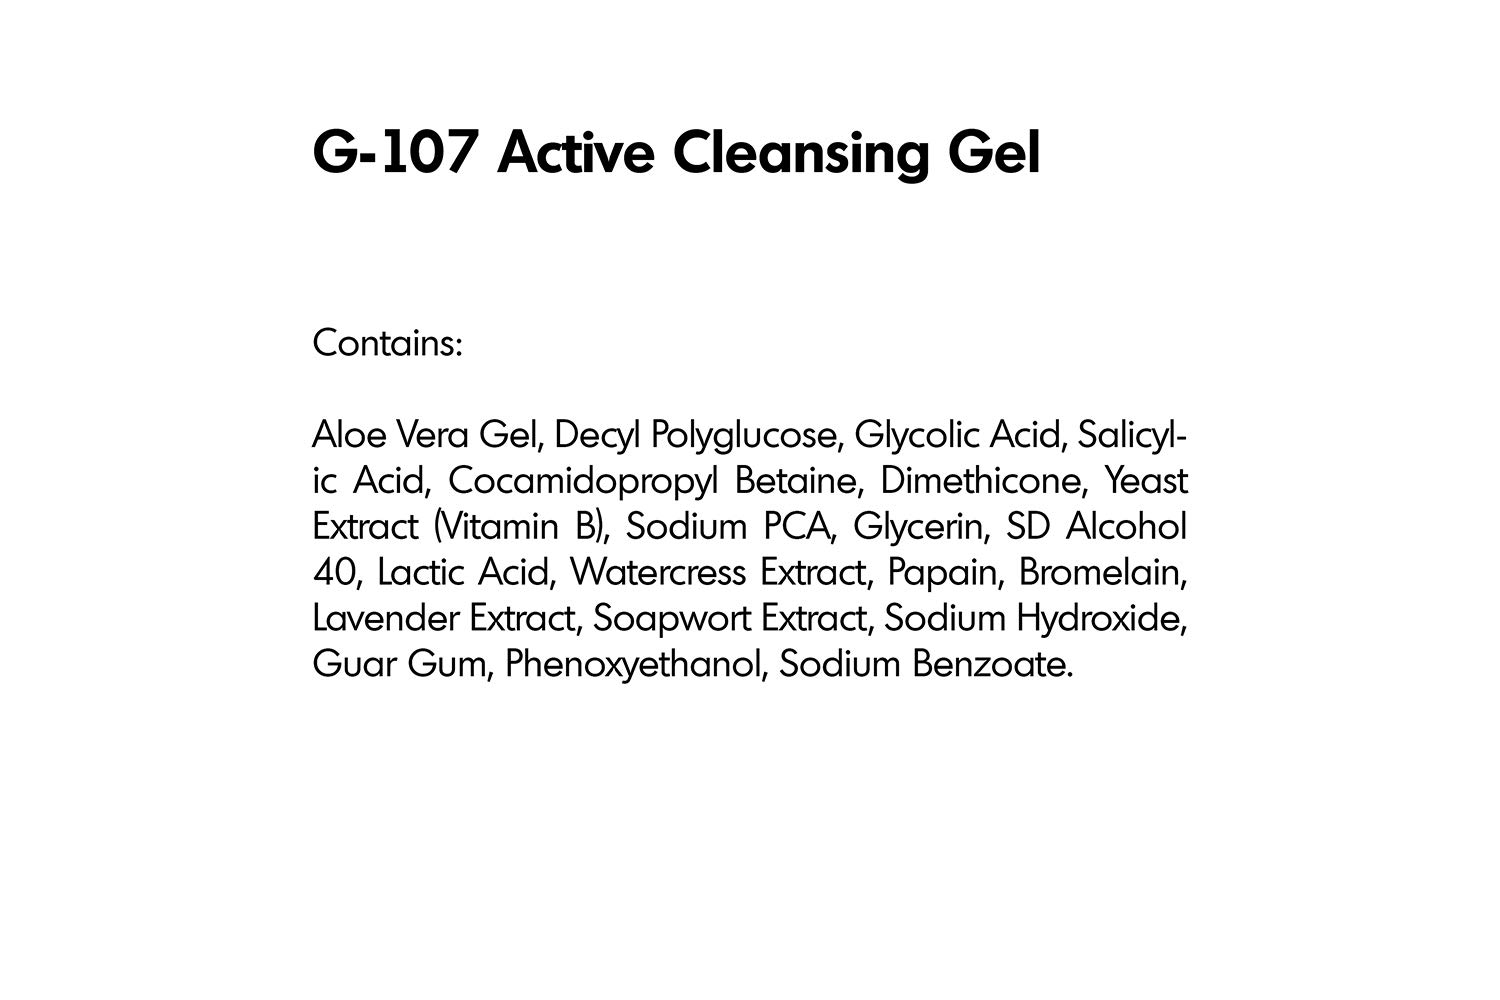 Amazon.com: Cleansing Gel Activo con Aha y BHA (g-107 ...